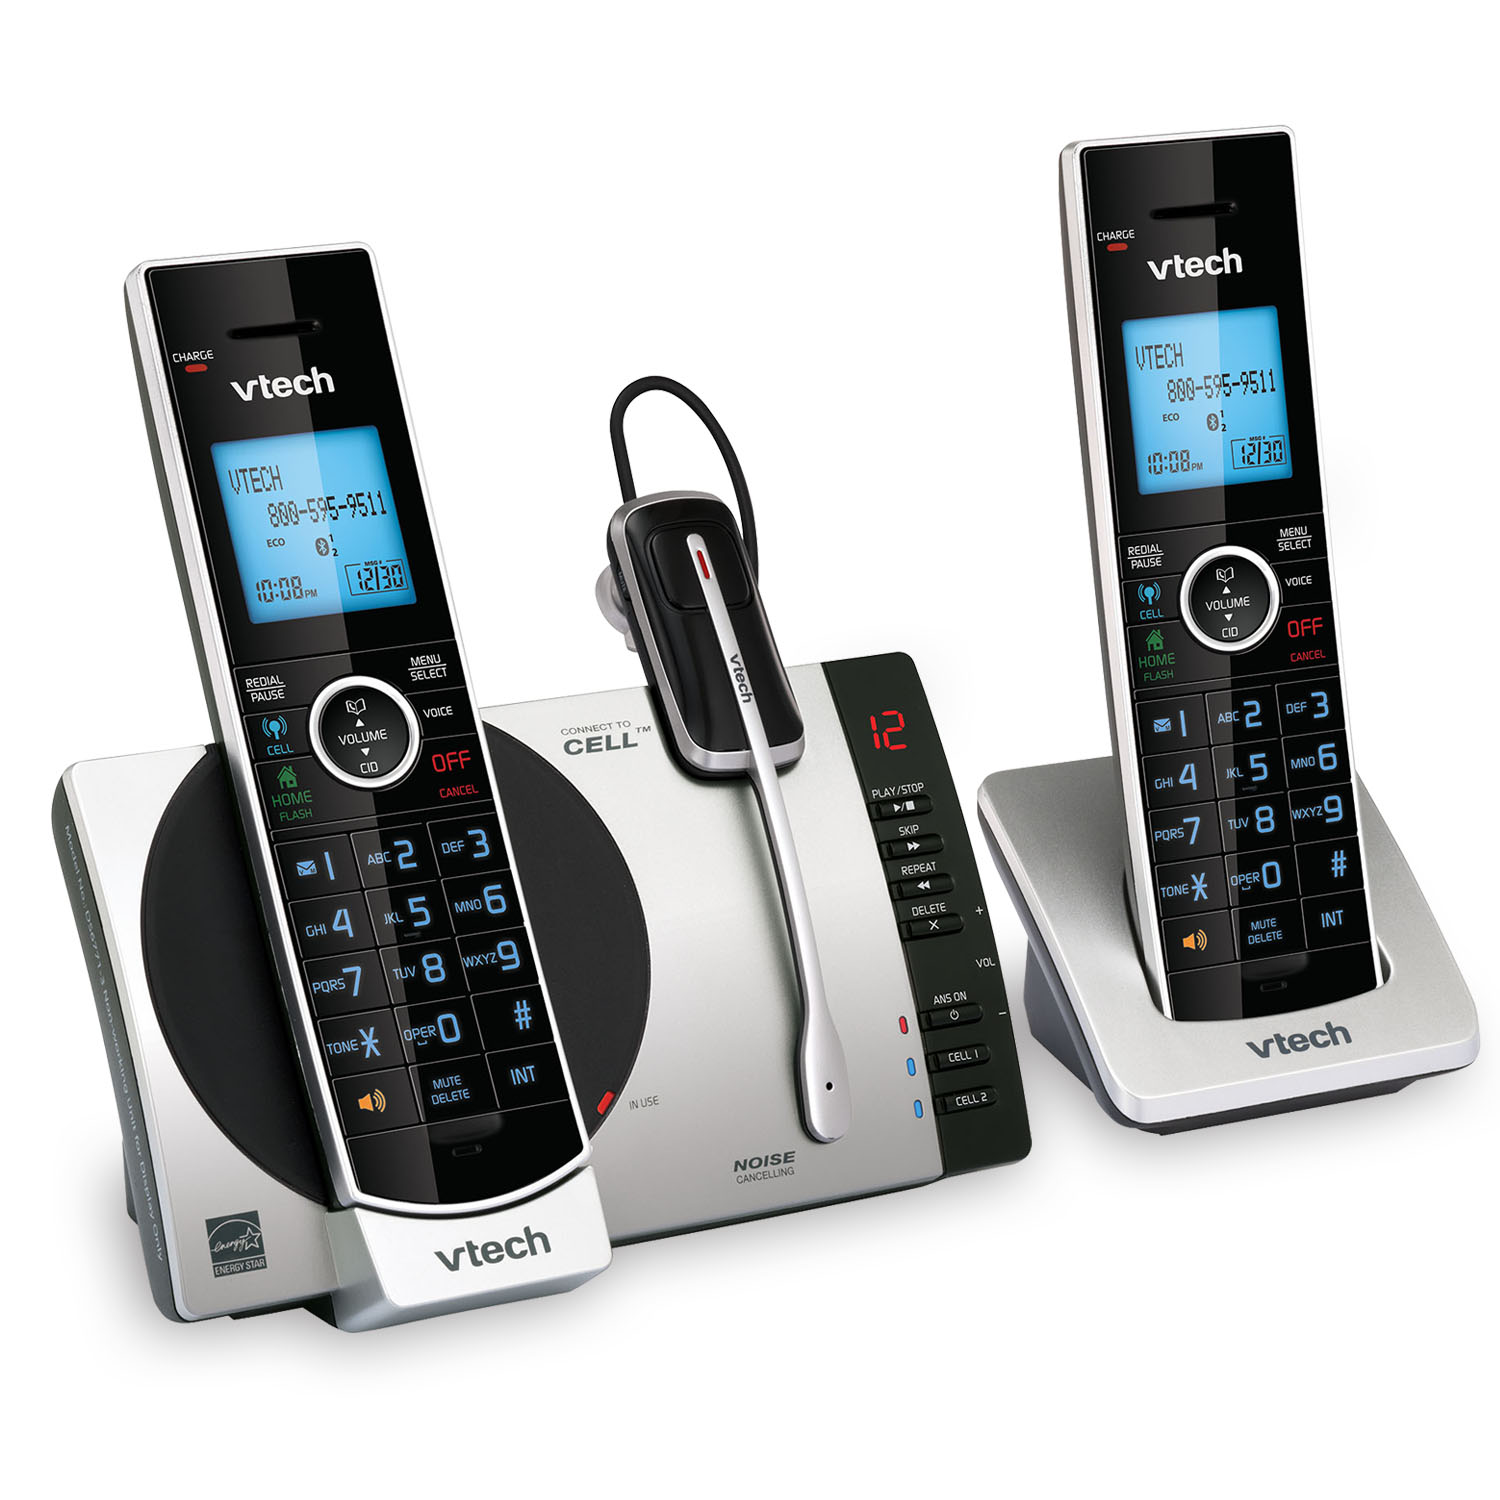 ds6771 3 vtech cordless phones. Black Bedroom Furniture Sets. Home Design Ideas